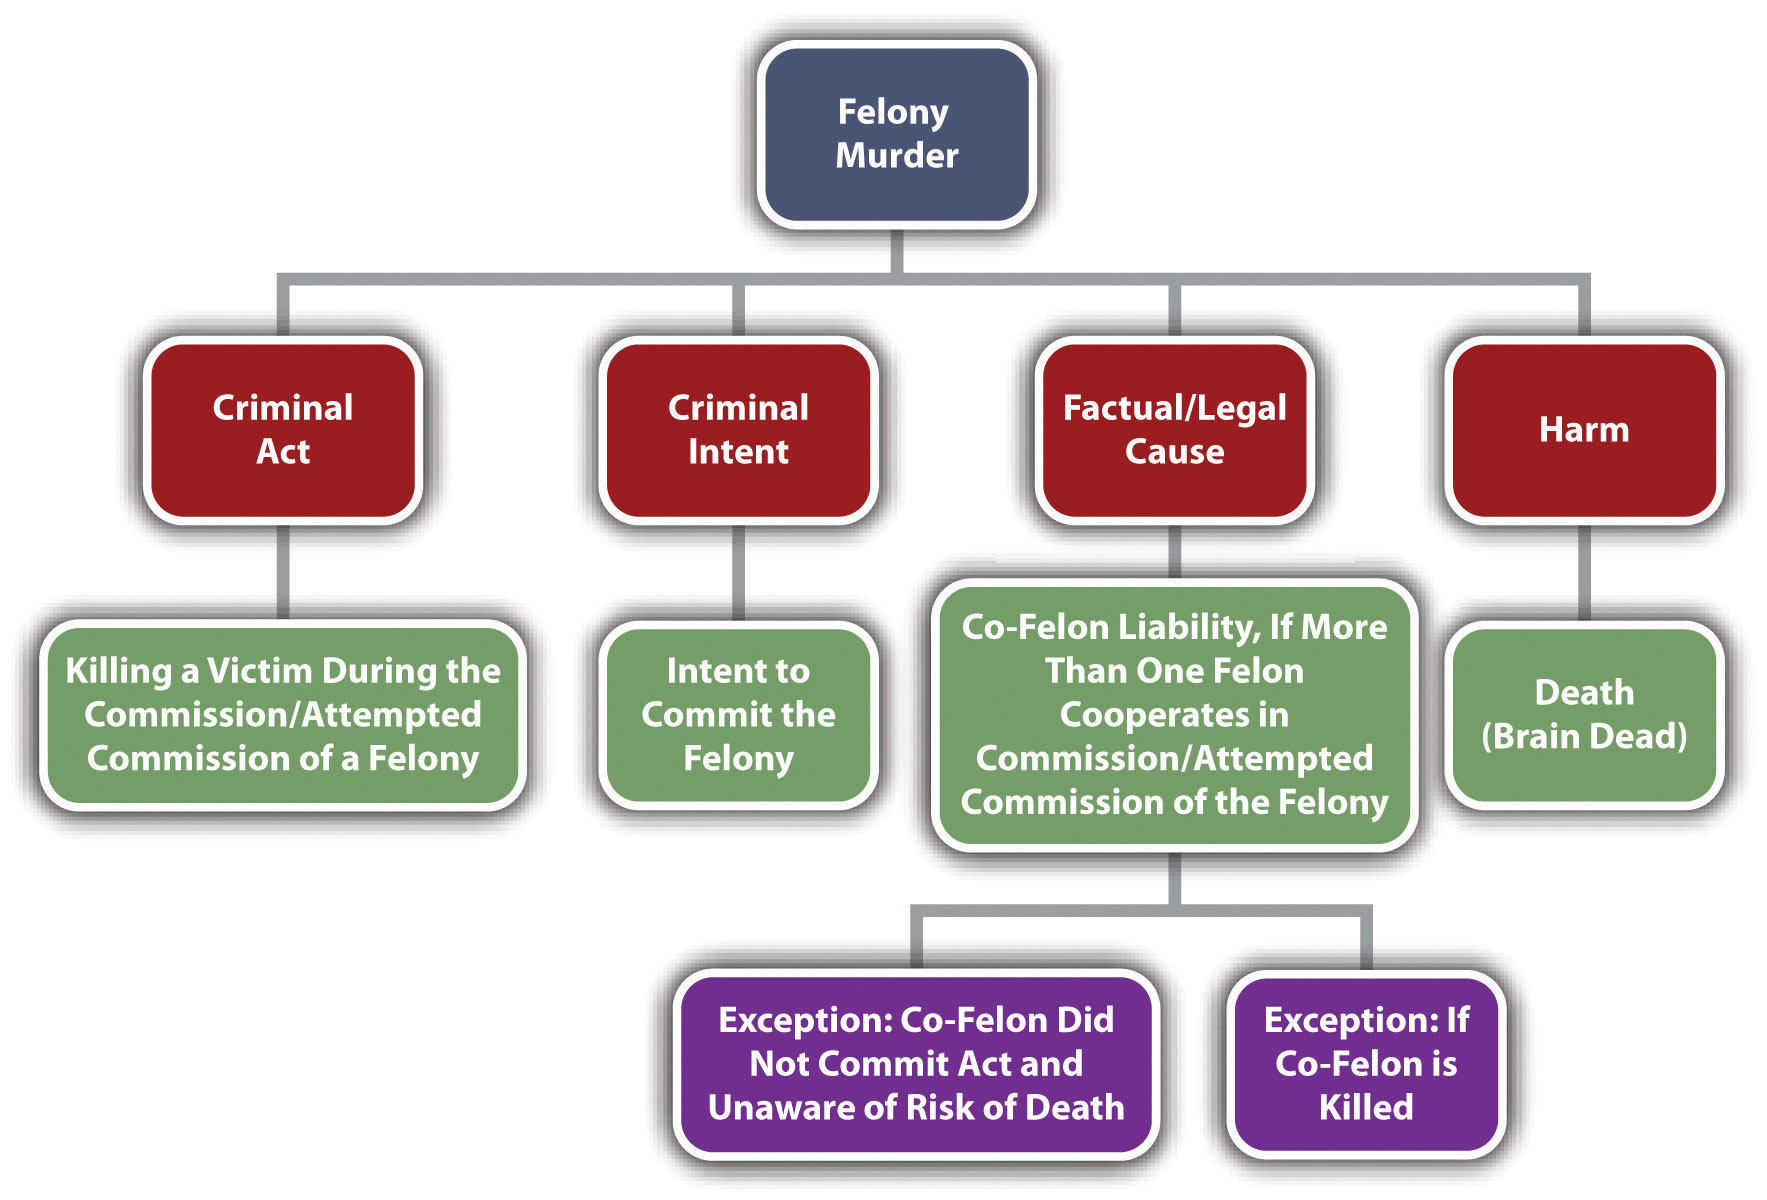 Diagram of Felony Murder